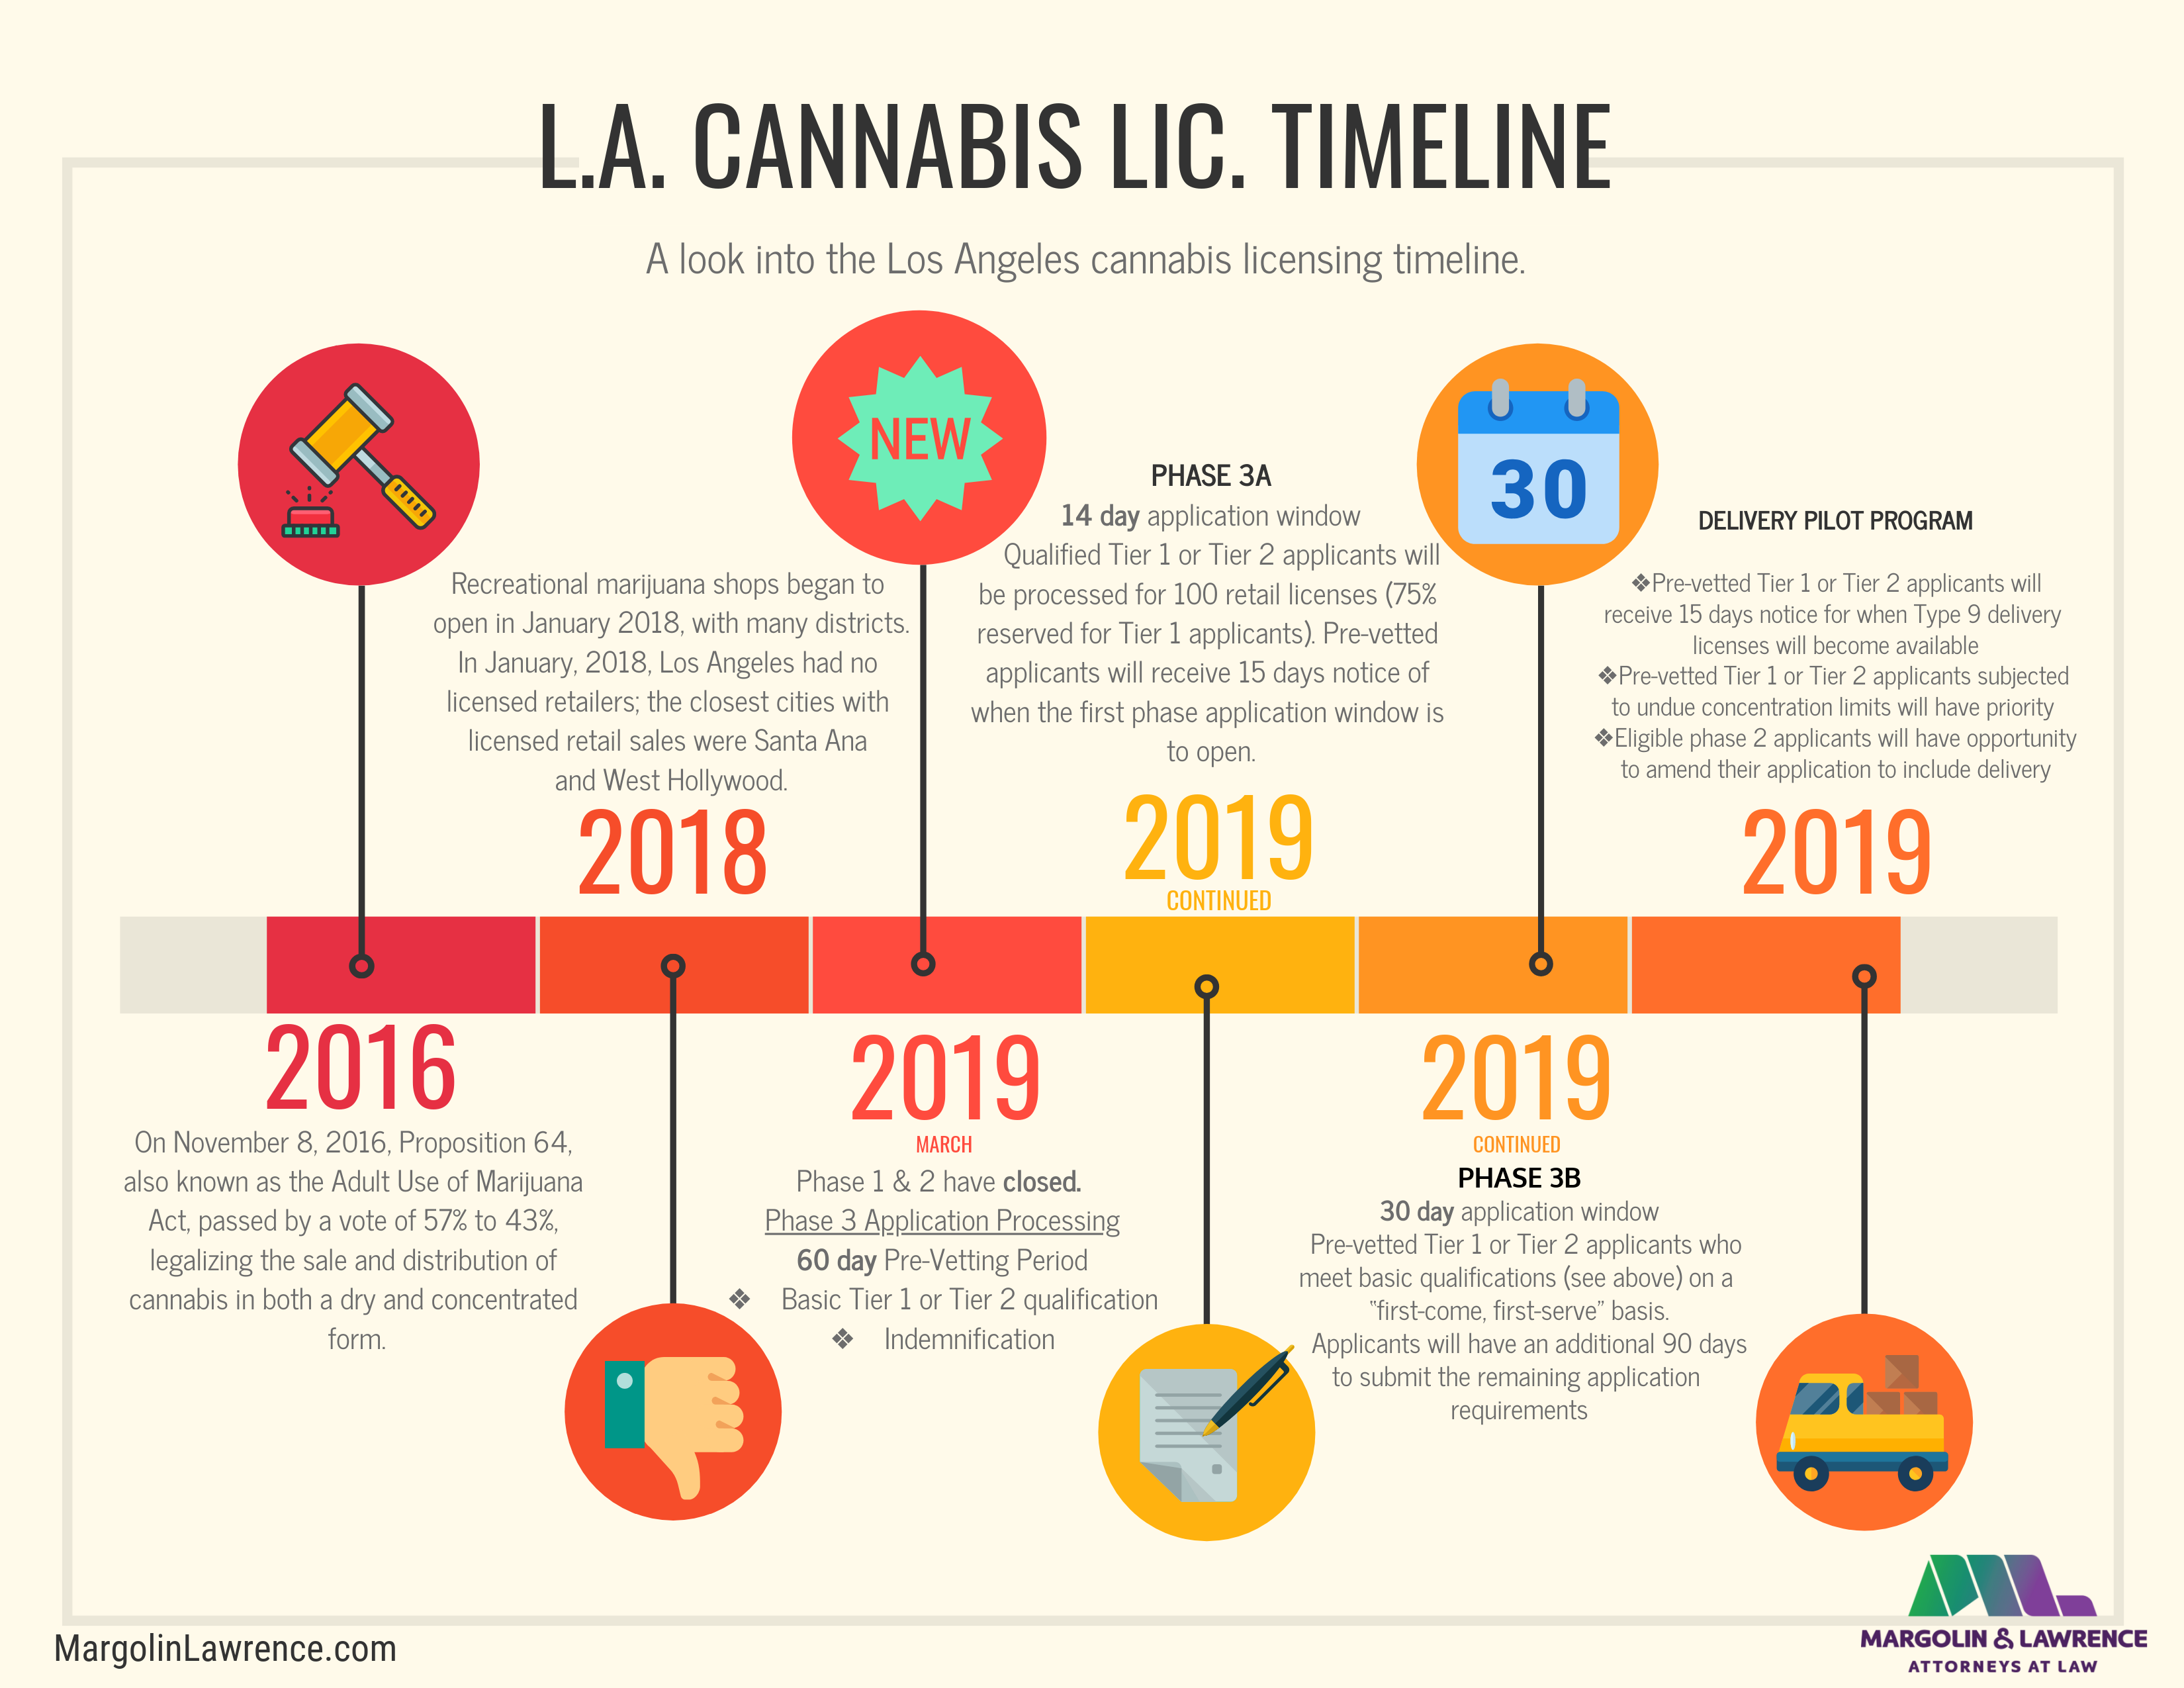 Los Angeles Cannabis Regulations Commission Announces Recommendations for Phase 3 Processing